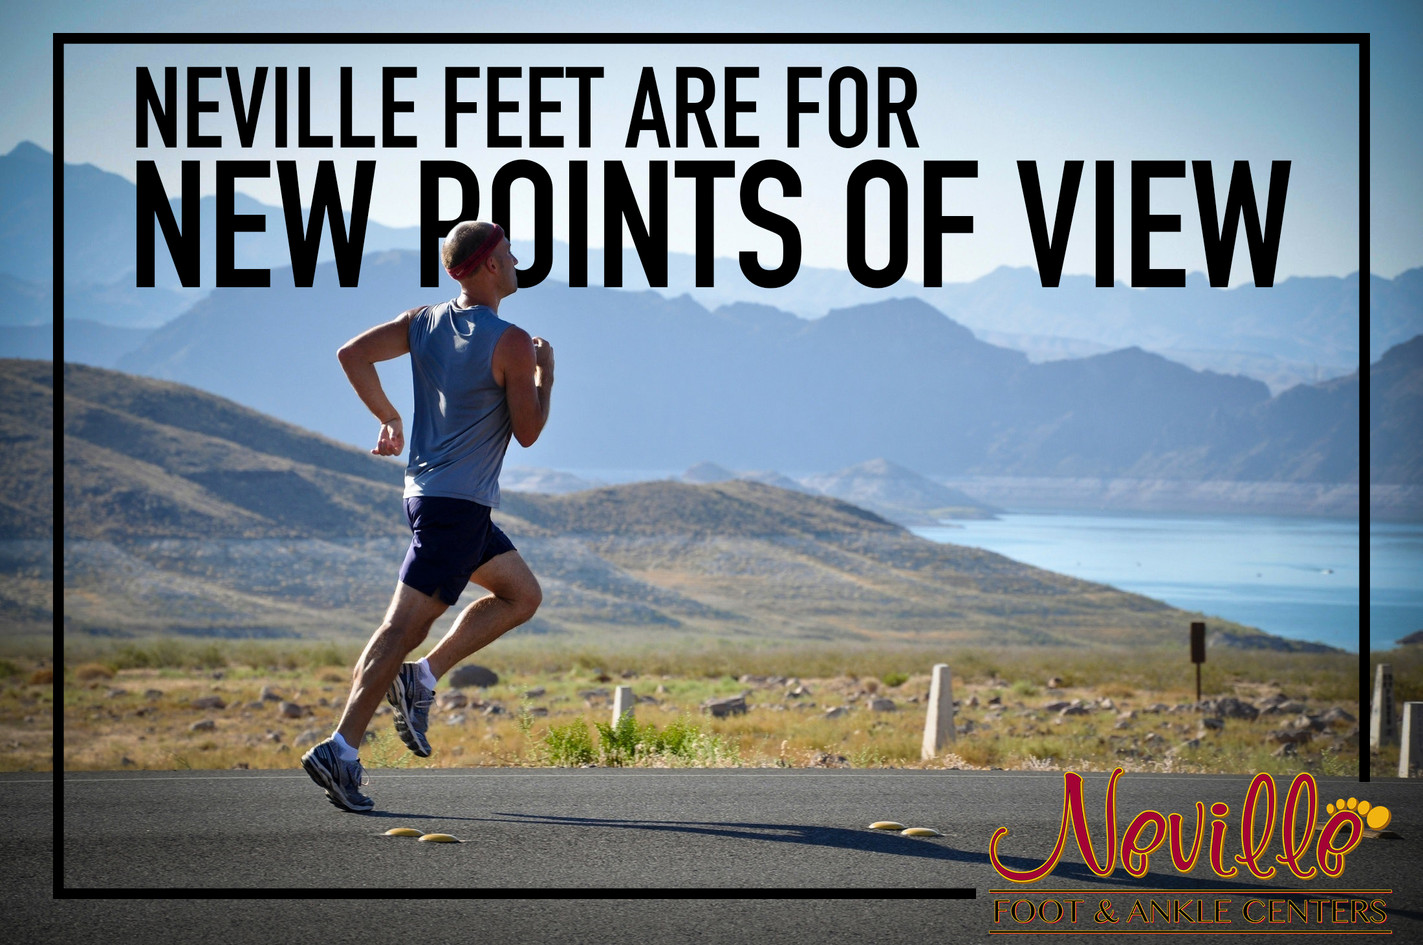 New points of view